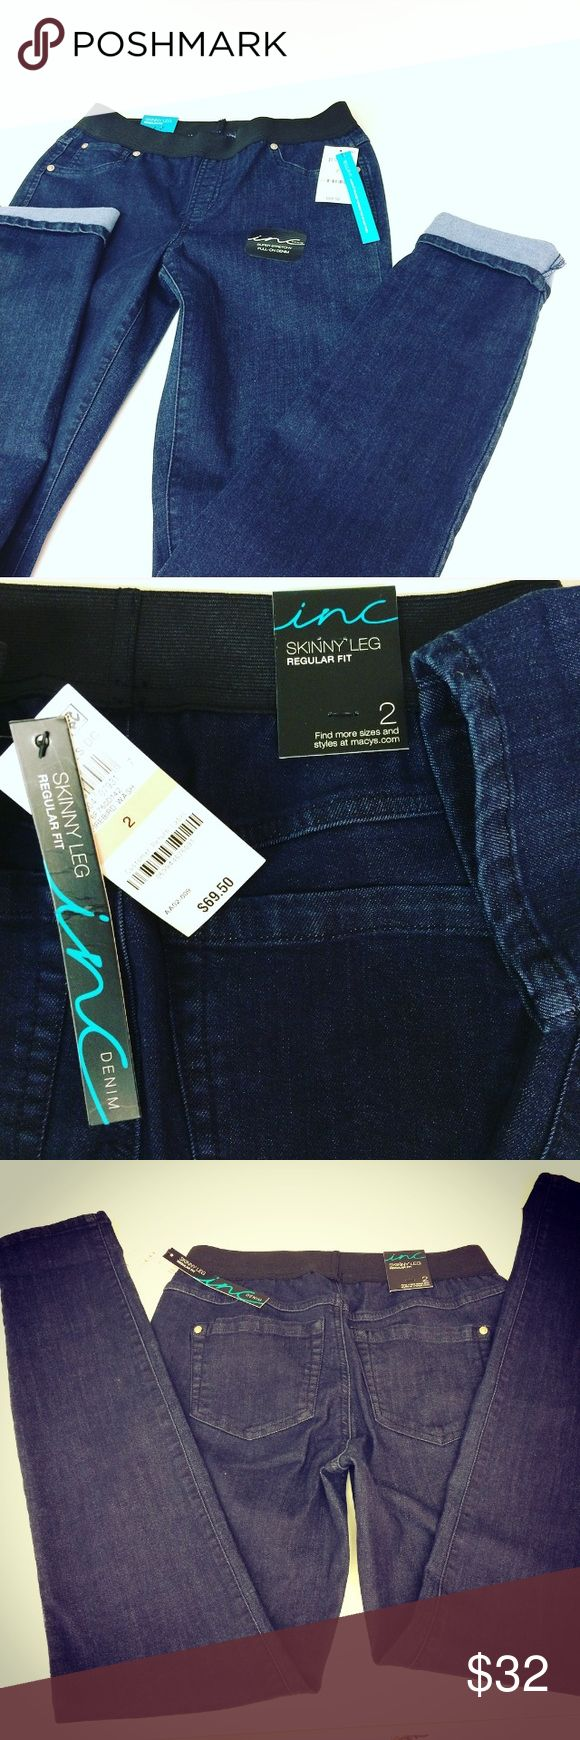 NWT Inc skinny jeans dark wash jegging pant 2 4 6 Same or next day shipping! So figure flattering booty popping, slimming! New with $69.50 price tags attached. Dark wash blue jeans/ jeggings Designer - INC Waist (stretch elastic) 26 to 30 inch Rise - 9 inch mid to high rise Inseam-  32 inch Skinny leg , very stretchy, fits sizes 2-6 Tagged size 2 has elastic waistband. These are dark blue not black. Faye front pockets, real back pockets, full length! Dress up or down Tags # pants womens…